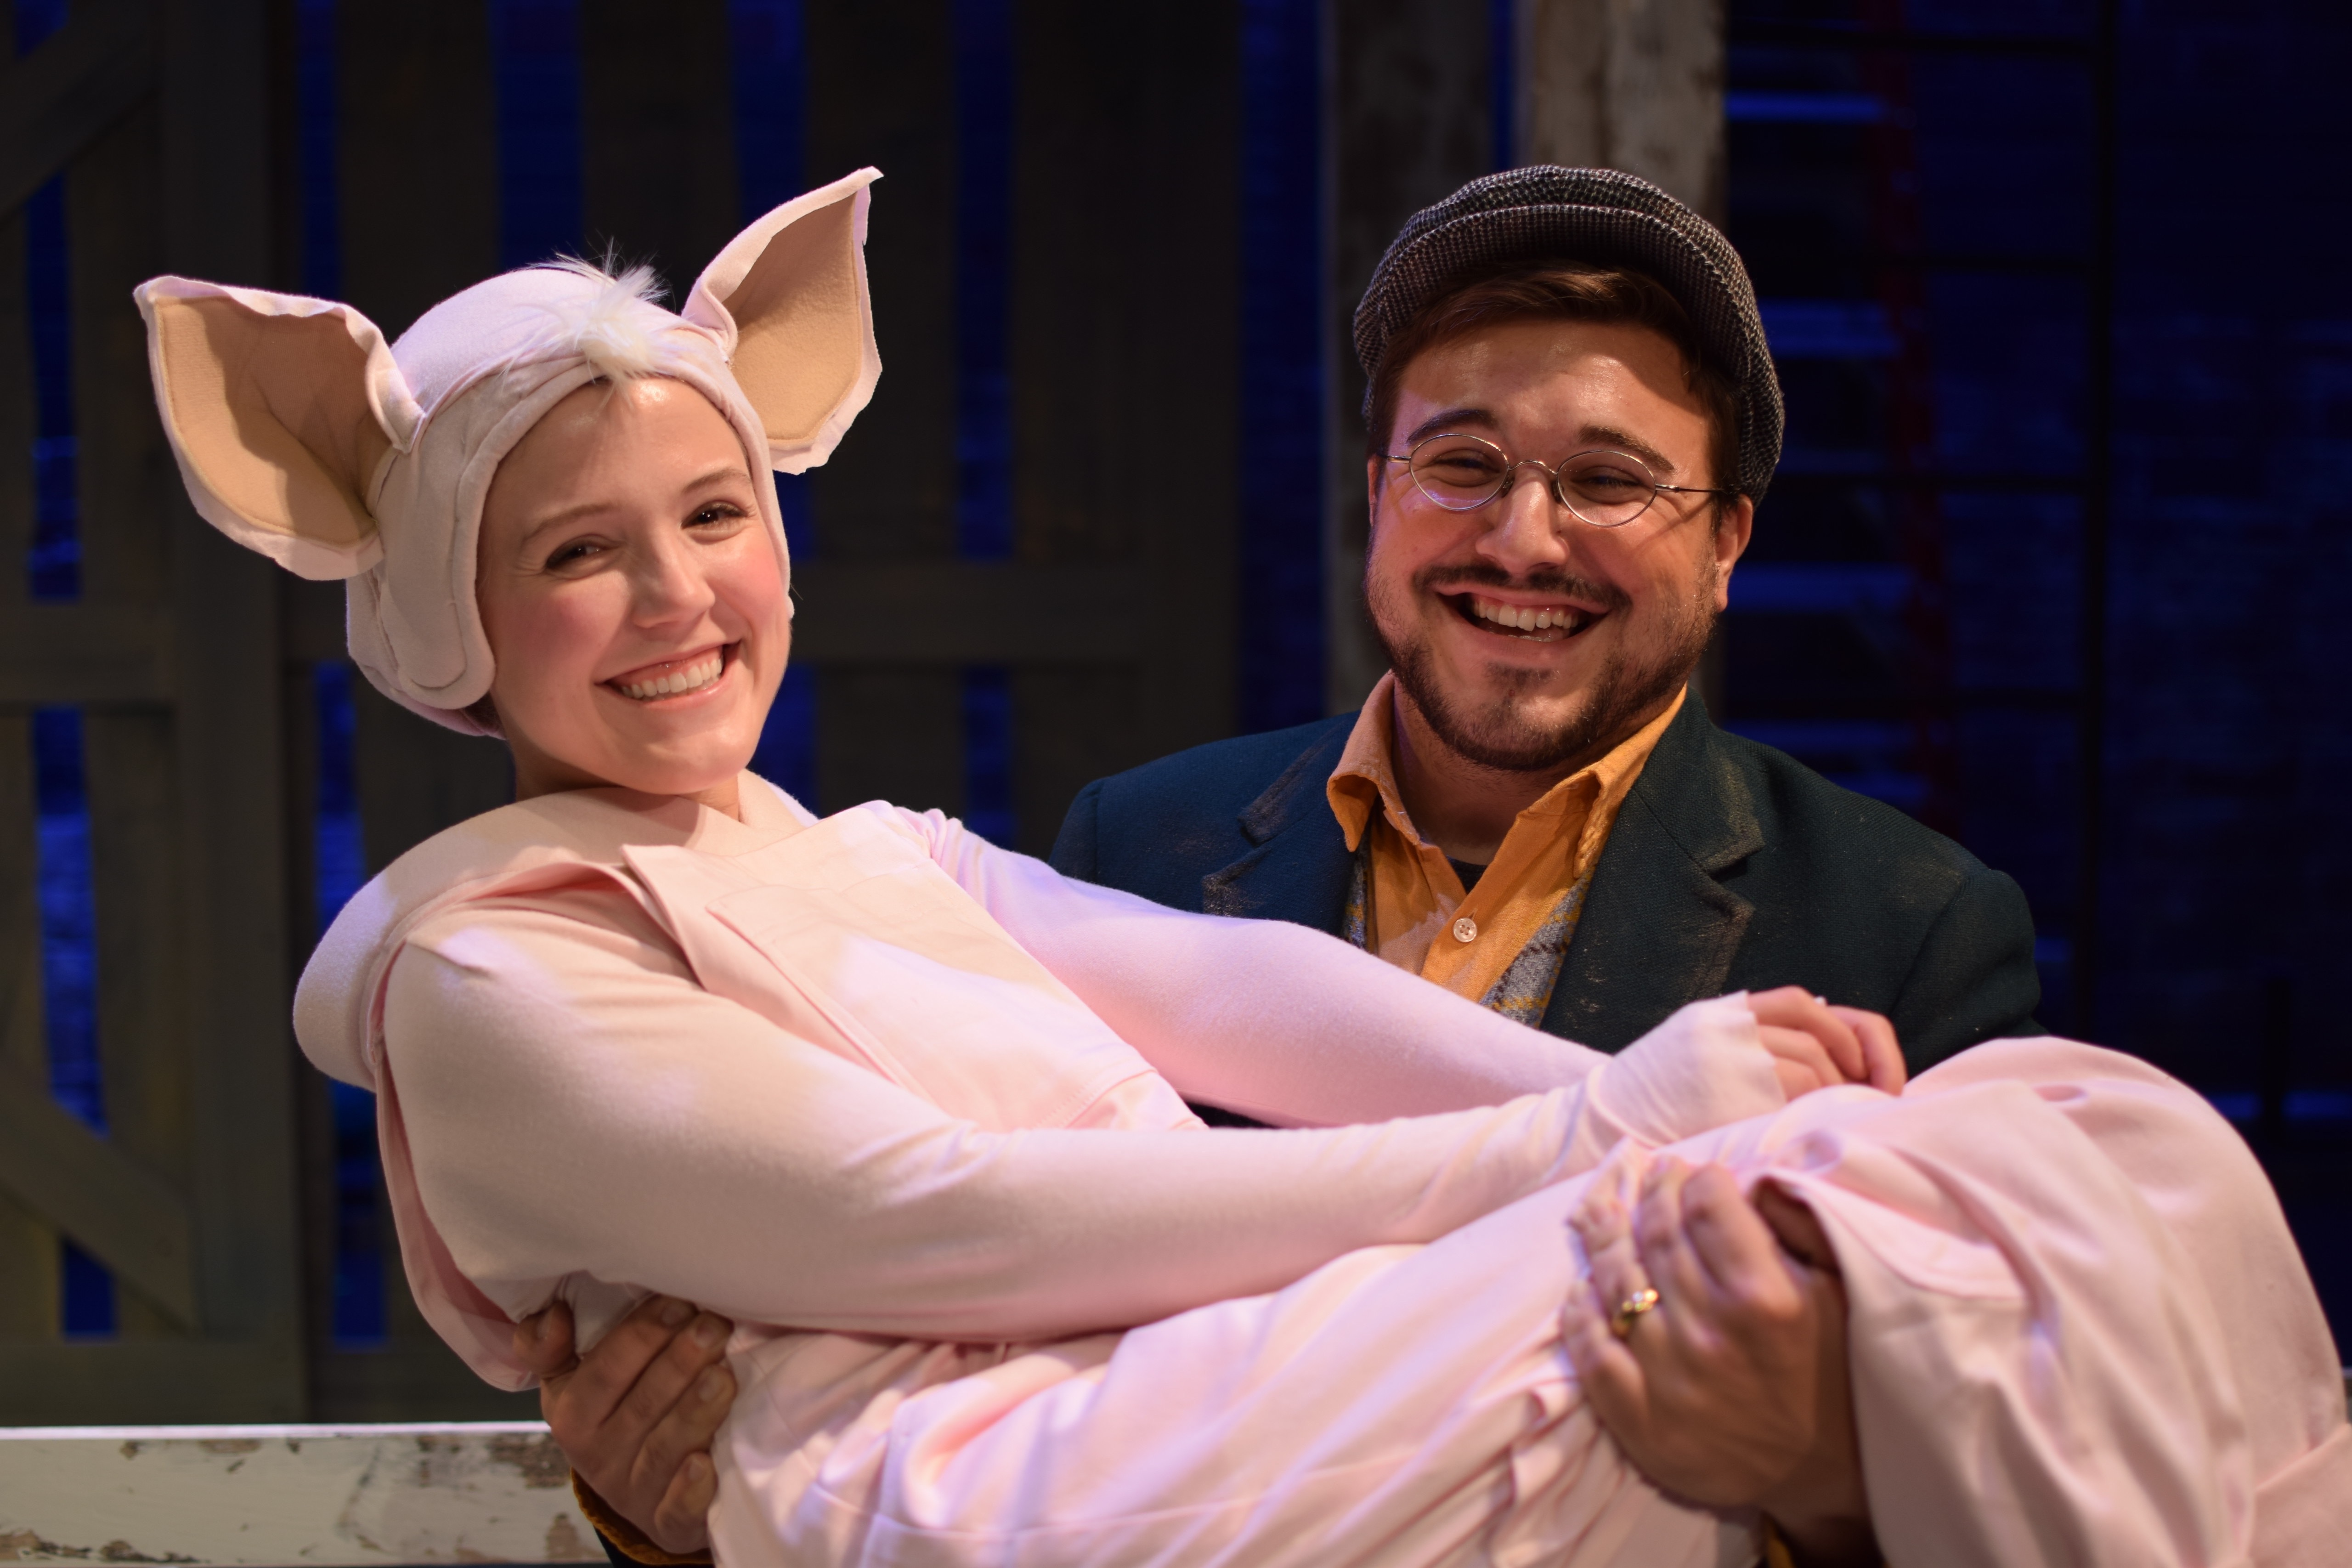 BWW Review: BABE THE SHEEP PIG is an Adorable Winner